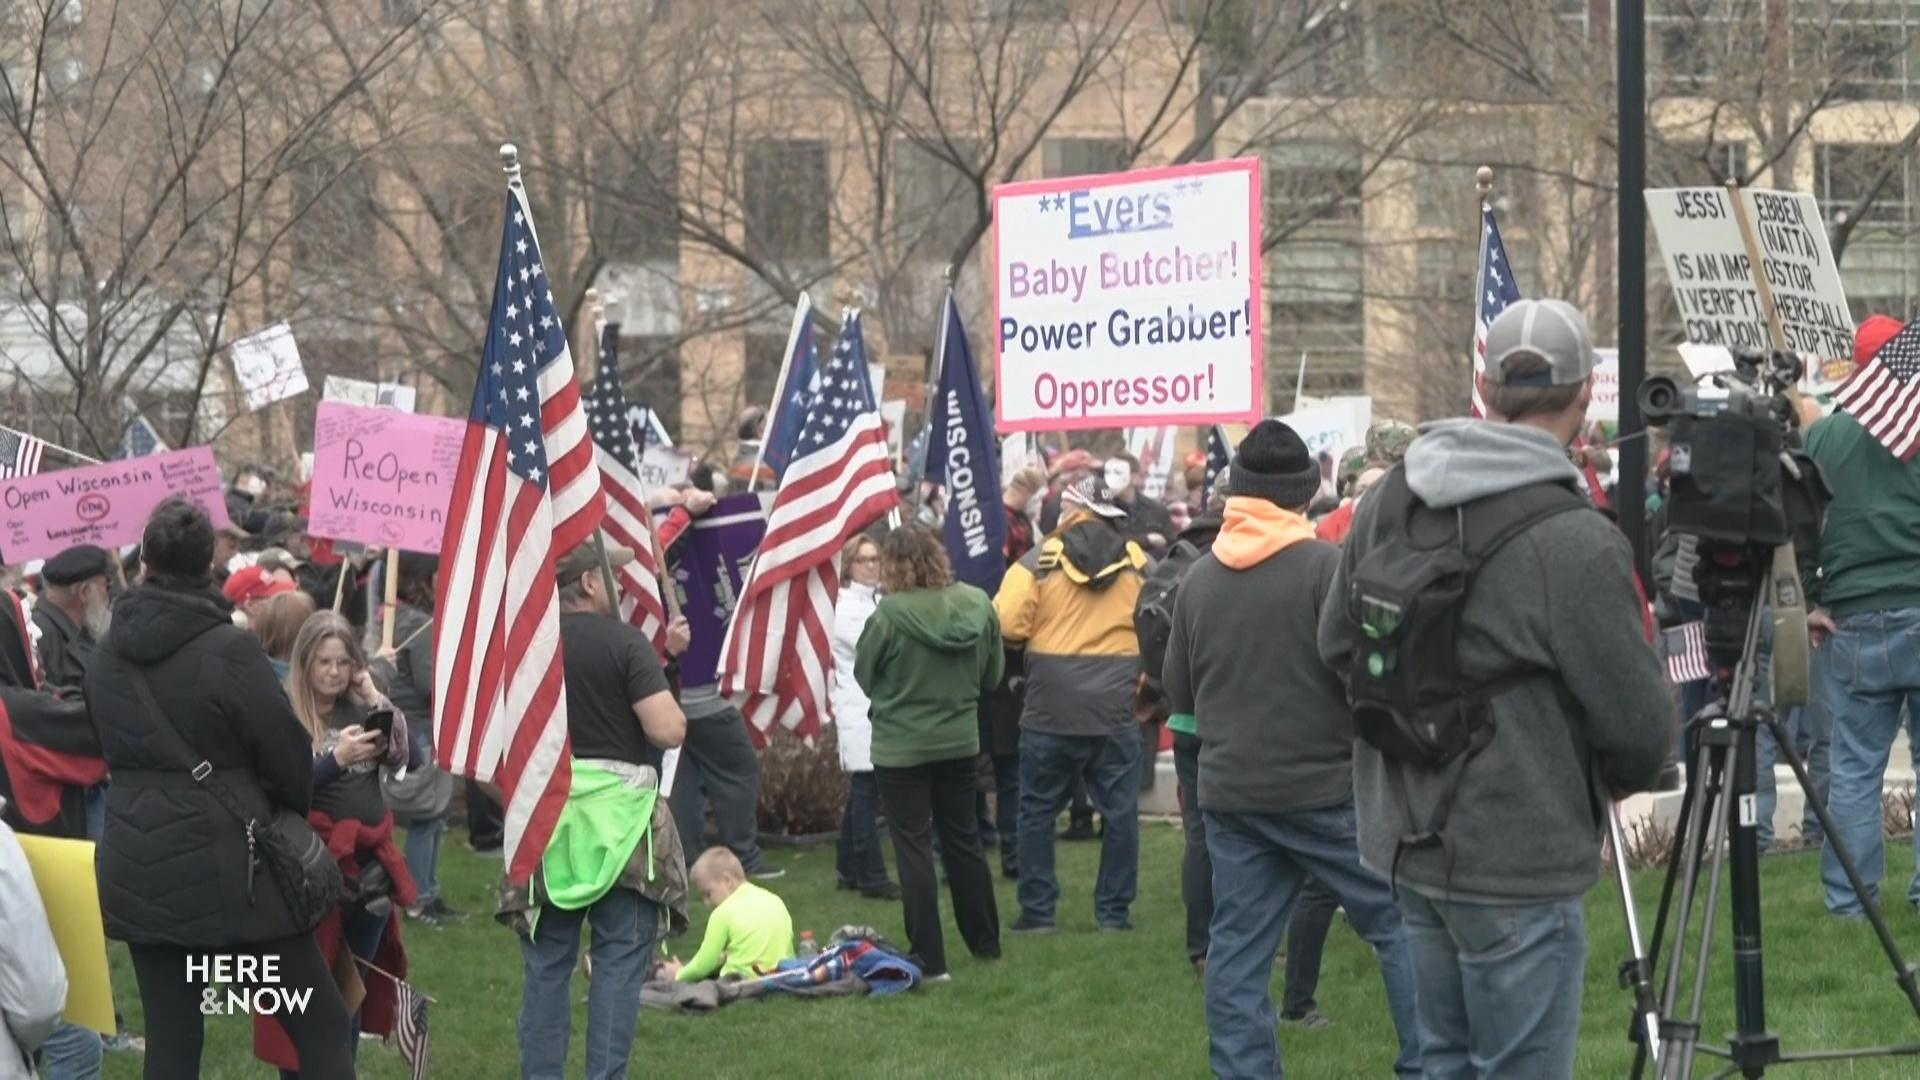 1,500 Rally at the State Capitol to Reopen Wisconsin